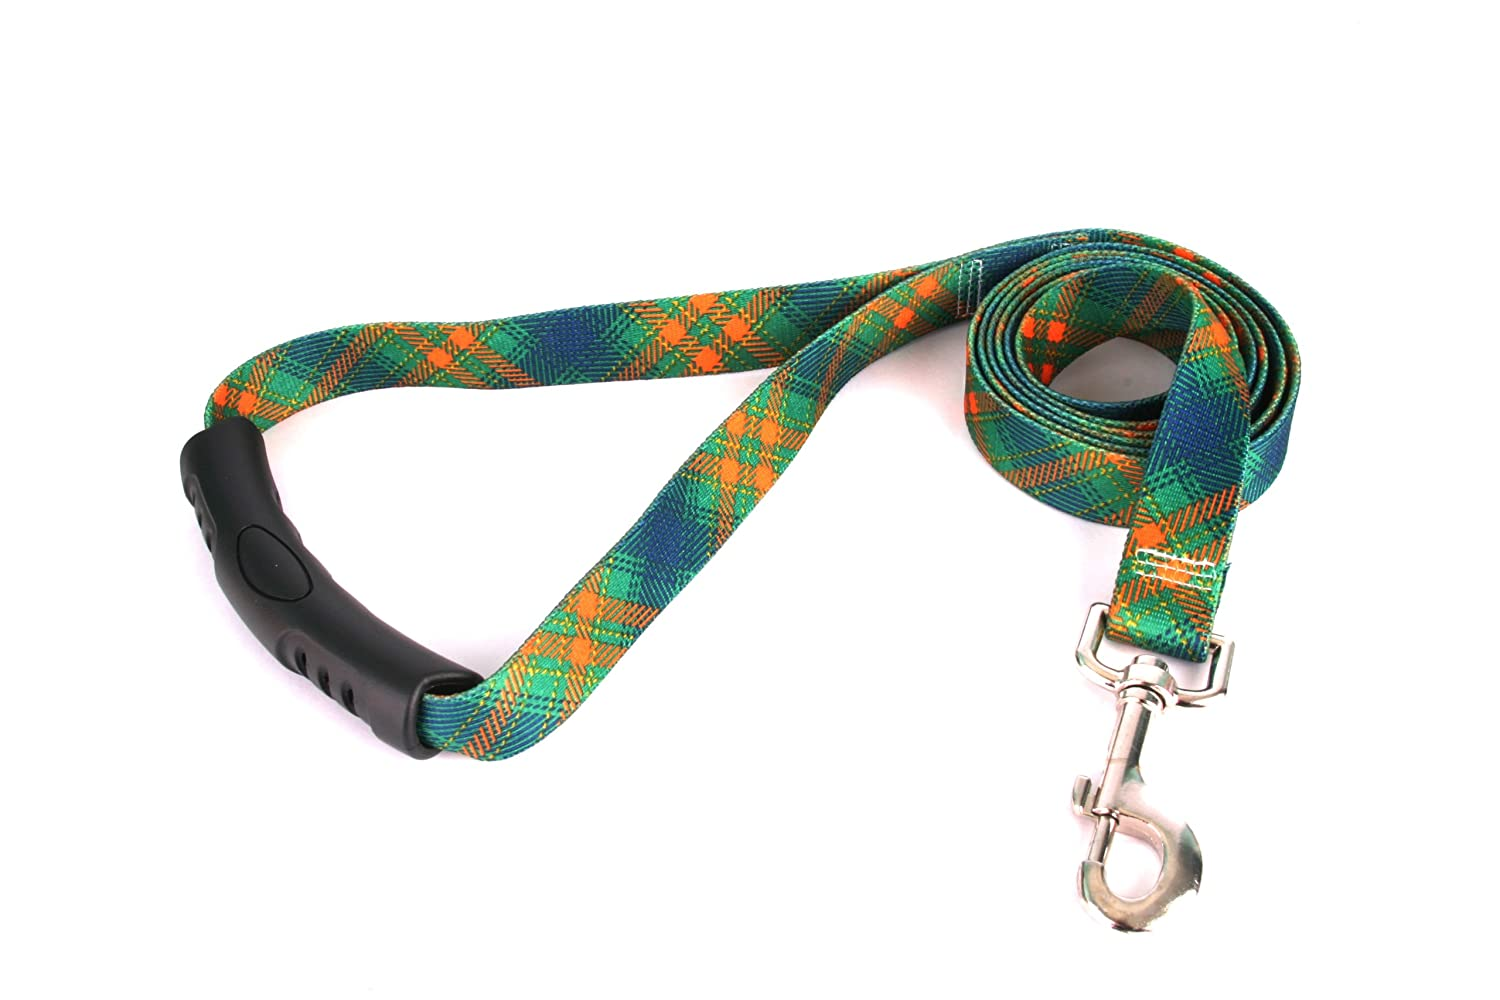 M Yellow Dog Design EZ-Grip Lead, 3 4-Inch by 60-Inch, Green Kilt